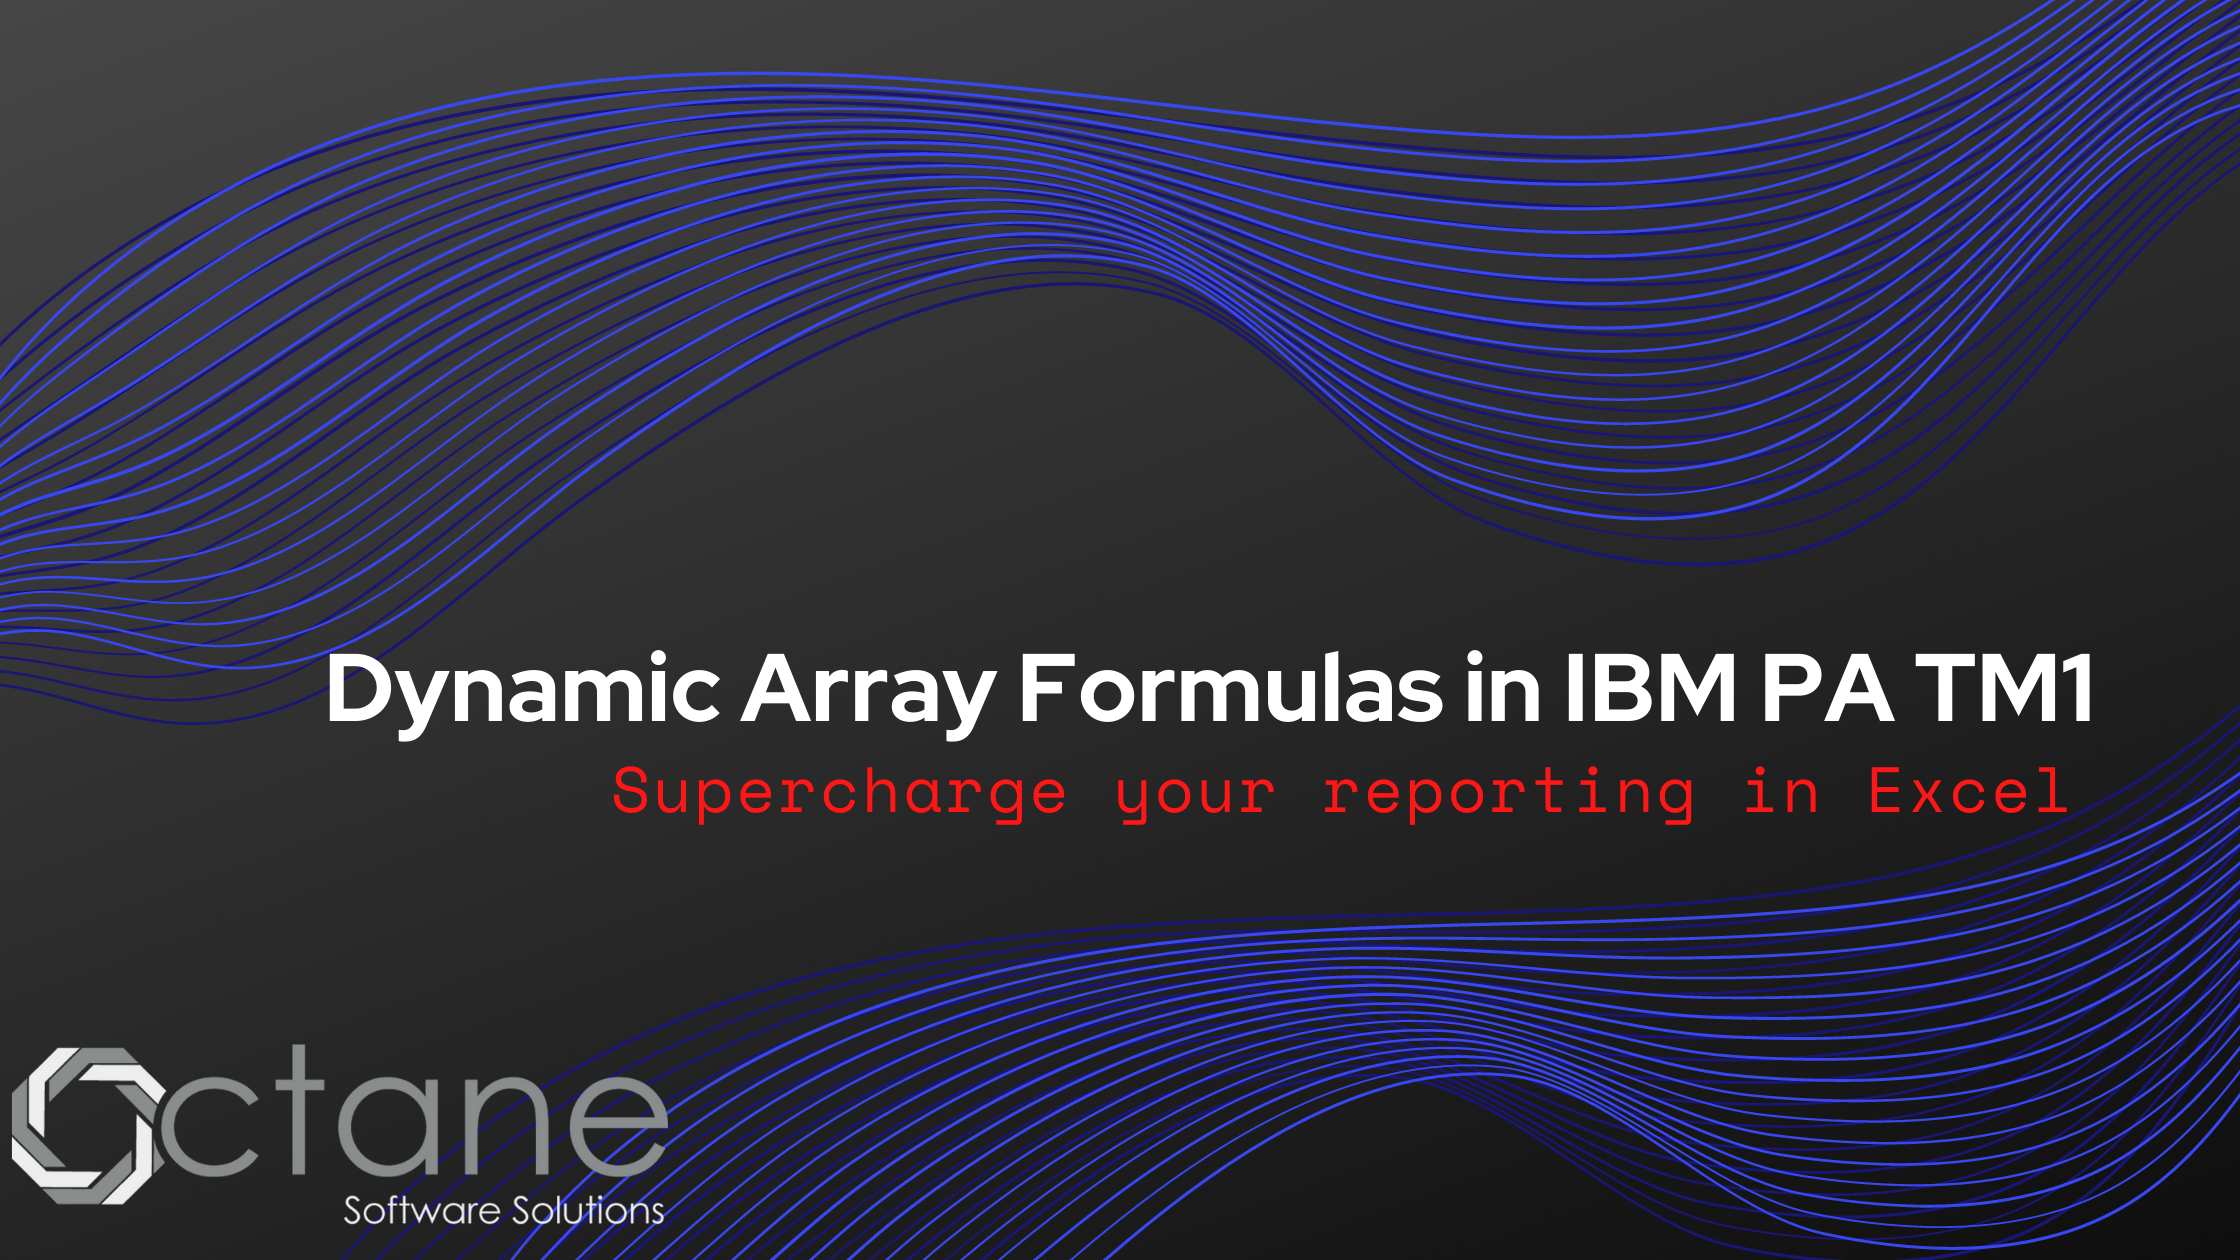 Dynamic Array Formulas in IBM PA TM1